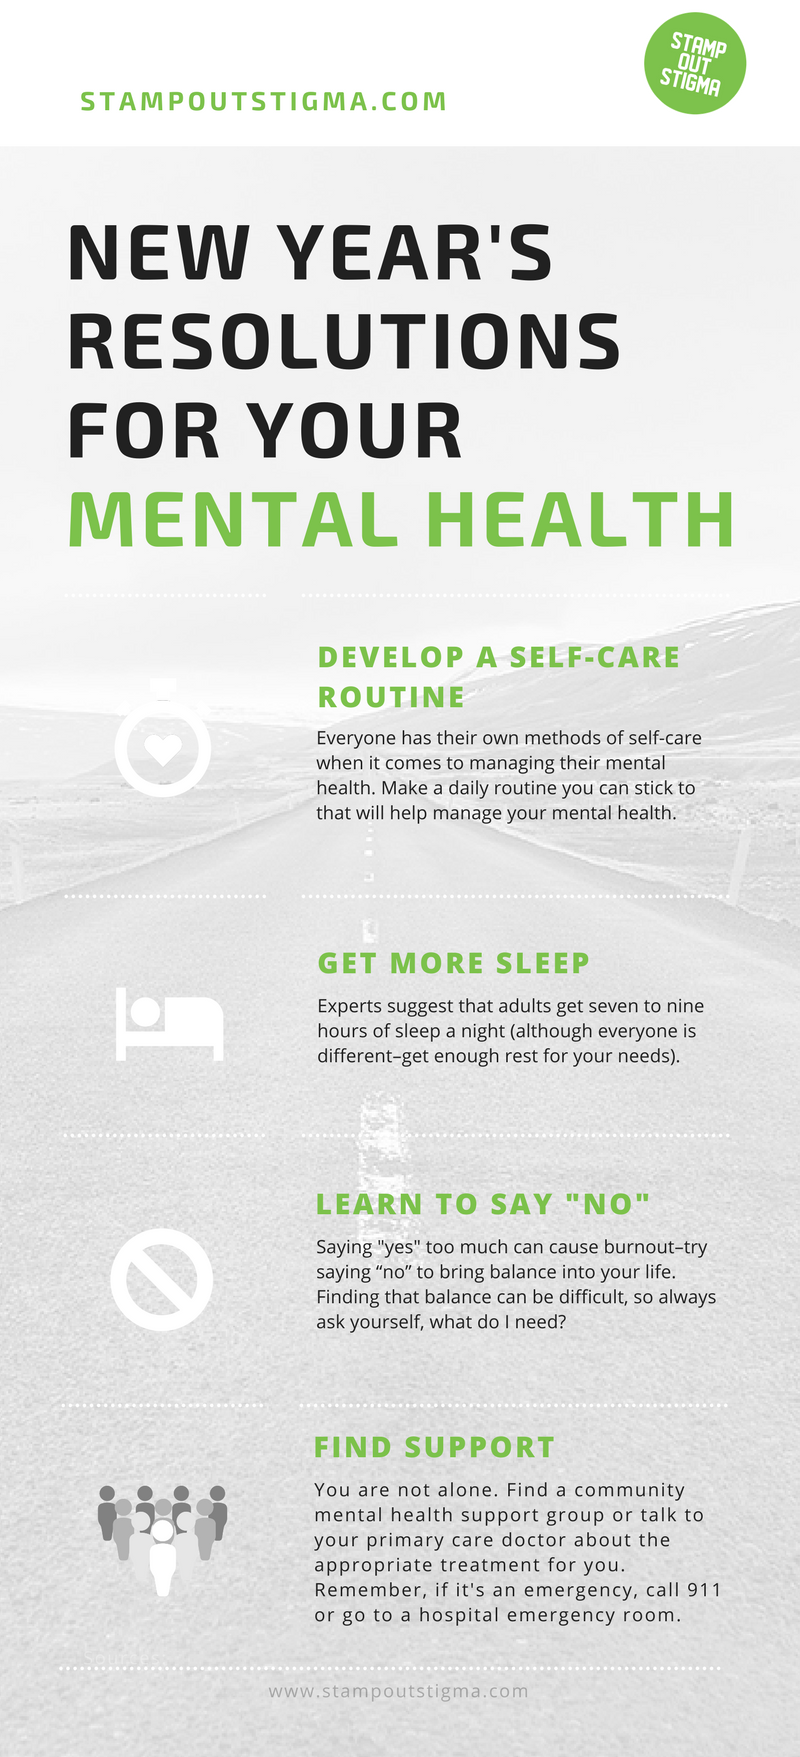 stamp out stigma on twitter a1 we always suggest starting a new self care routine in the new year if you repeat healthy habits they will start to feel